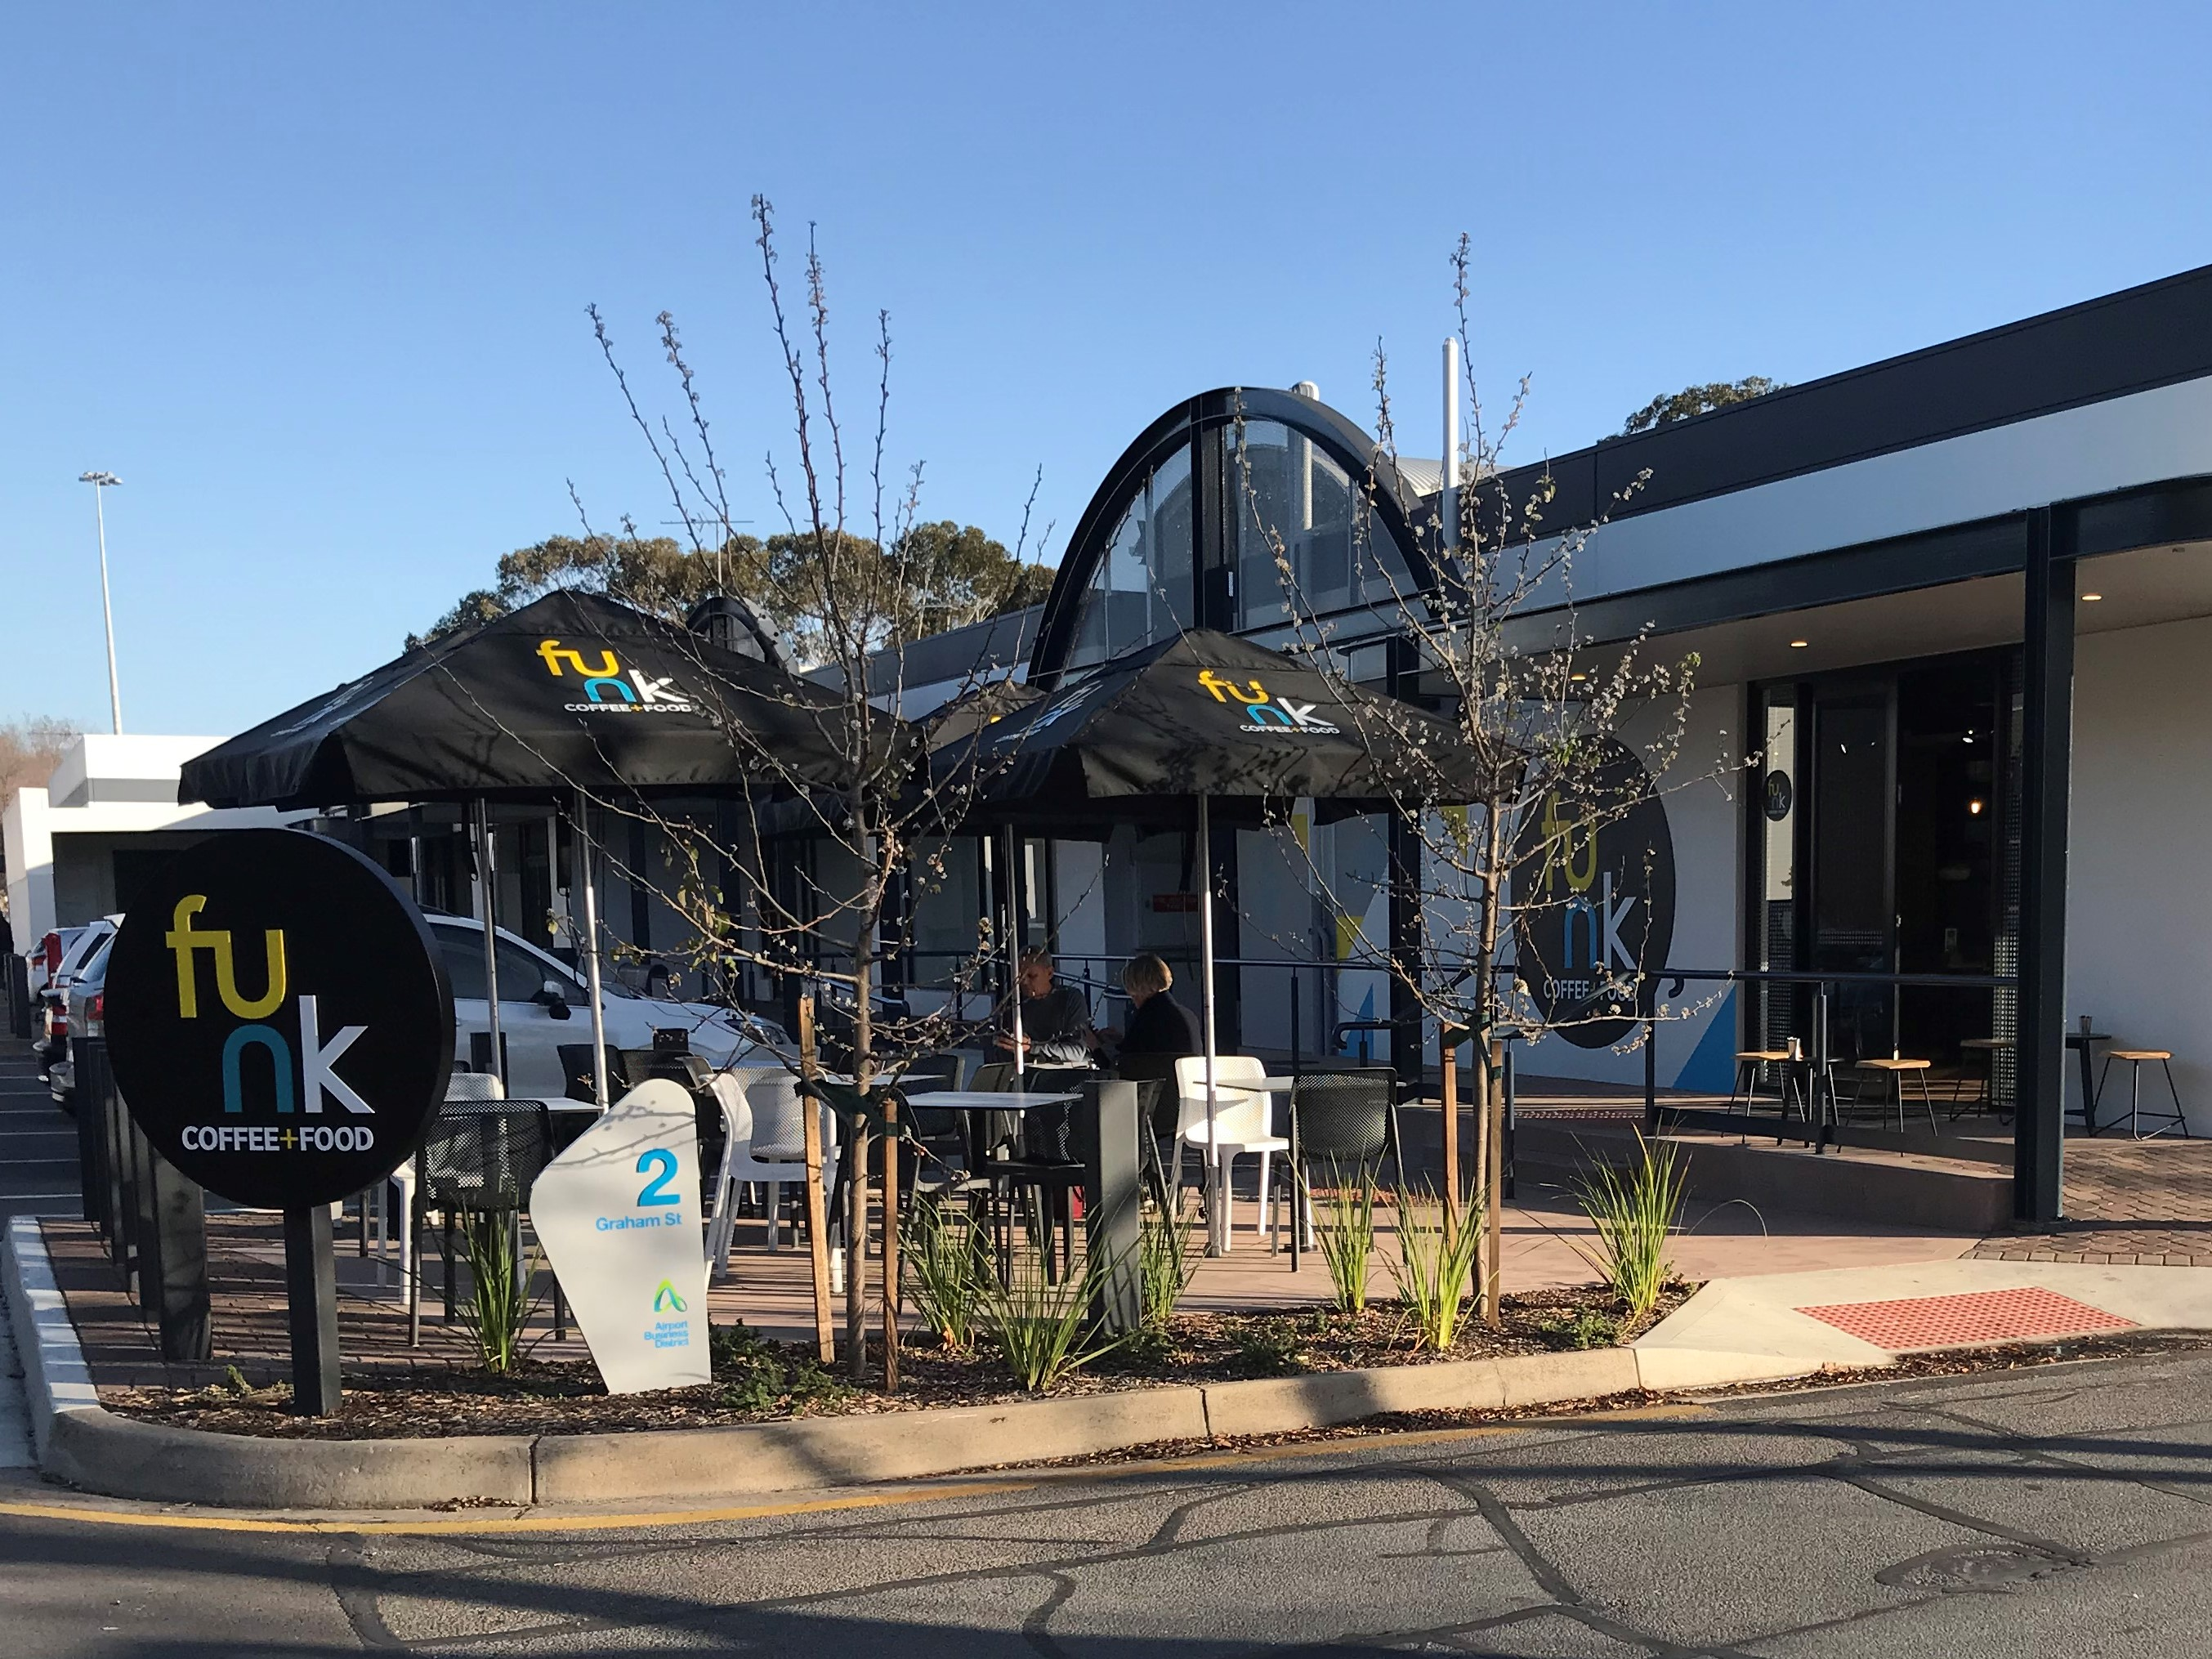 FUNK COFFEE + FOOD CAFE -  NEW -  EXPORT PARK (ADELAIDE AIRPORT PRECINCT)